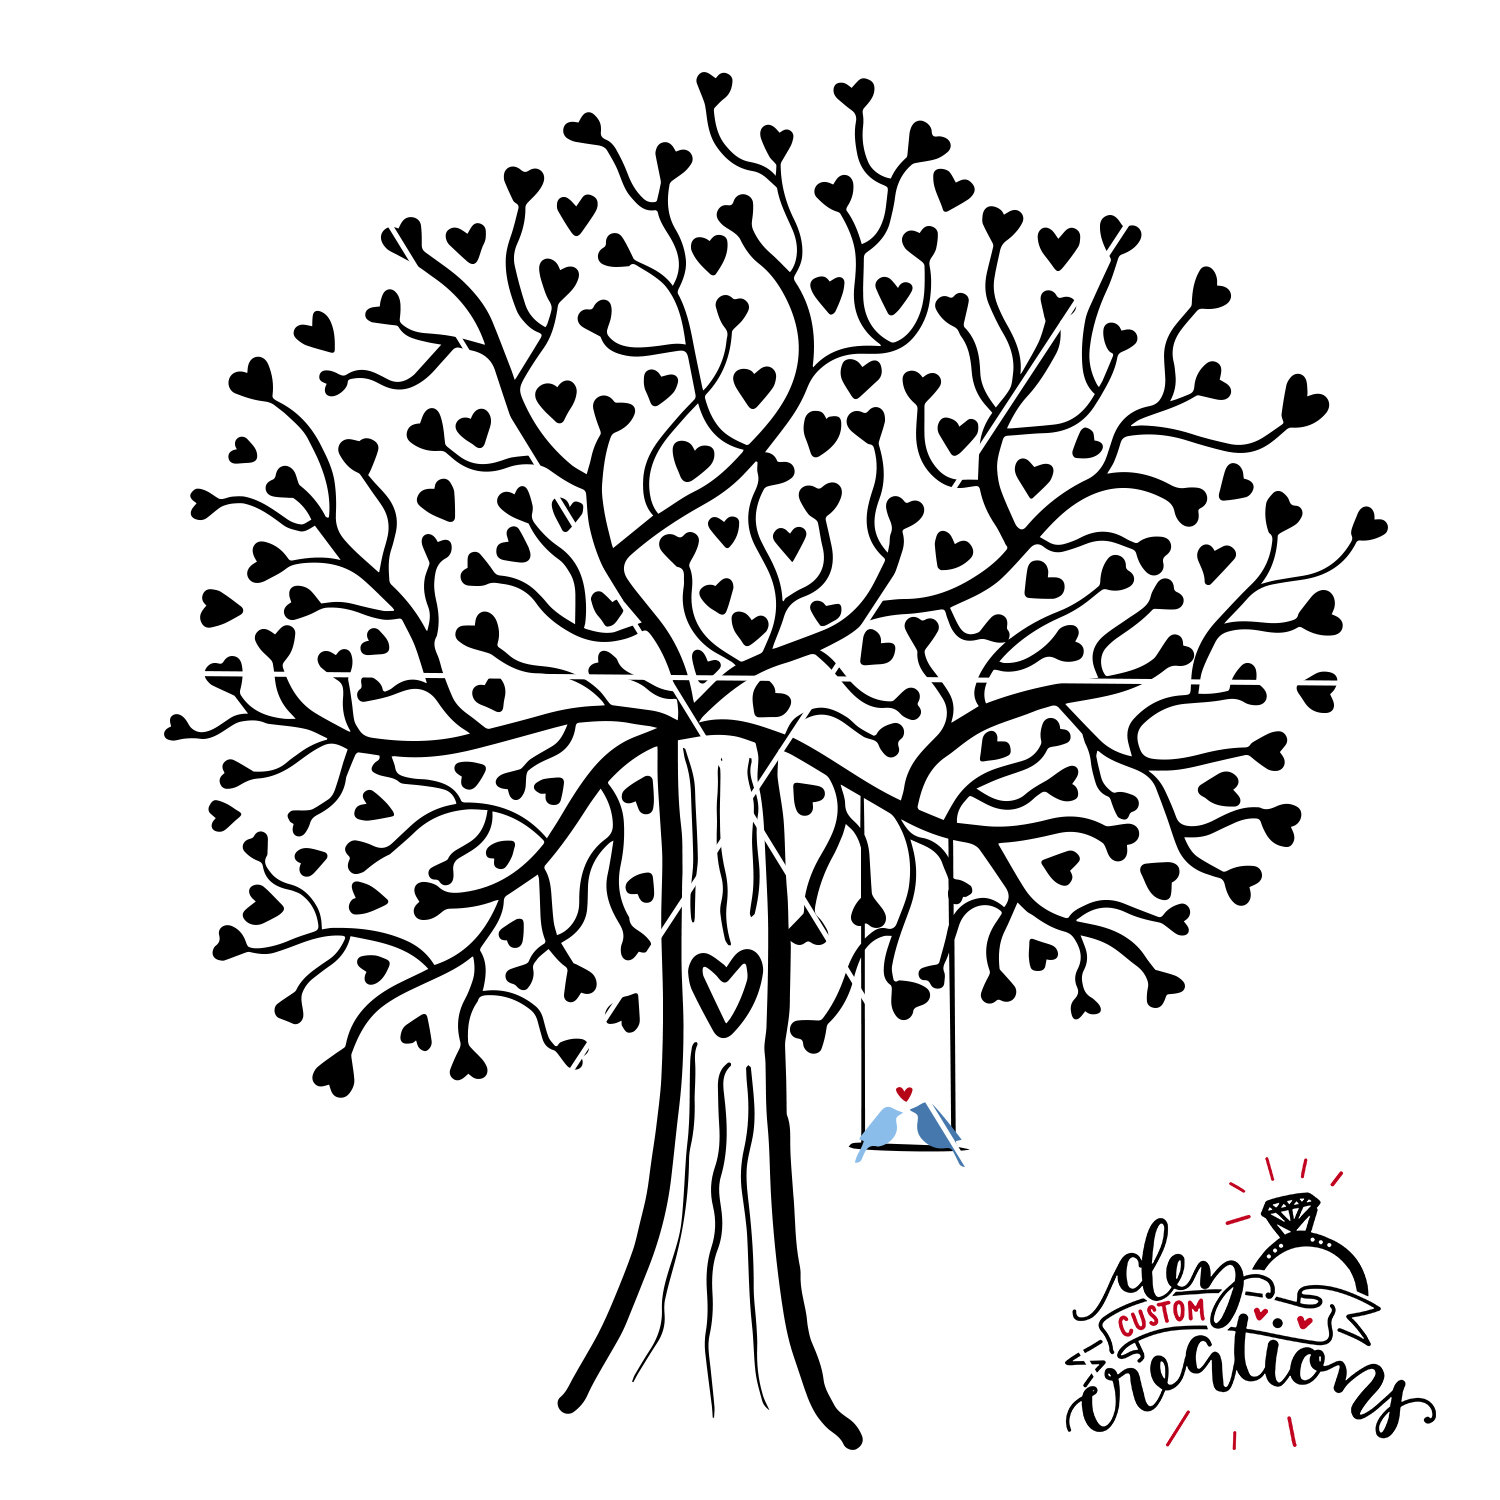 1500x1500 Tree Svg Lovebirds Svg Heart Tree Svg File Tree With Swing